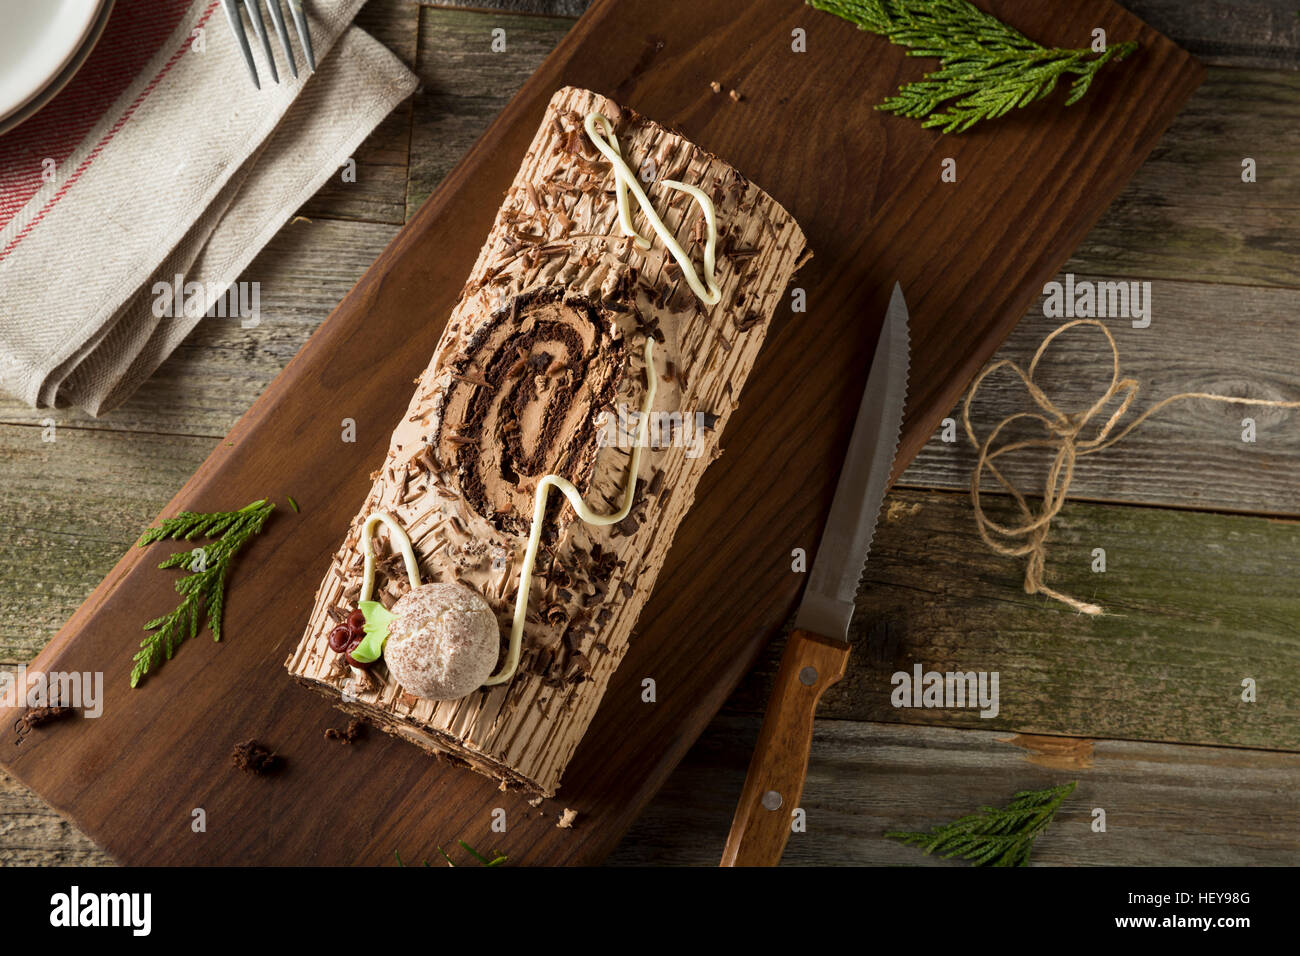 Homemade Chocolate Christmas Yule Log with Mousse and Frosting - Stock Image